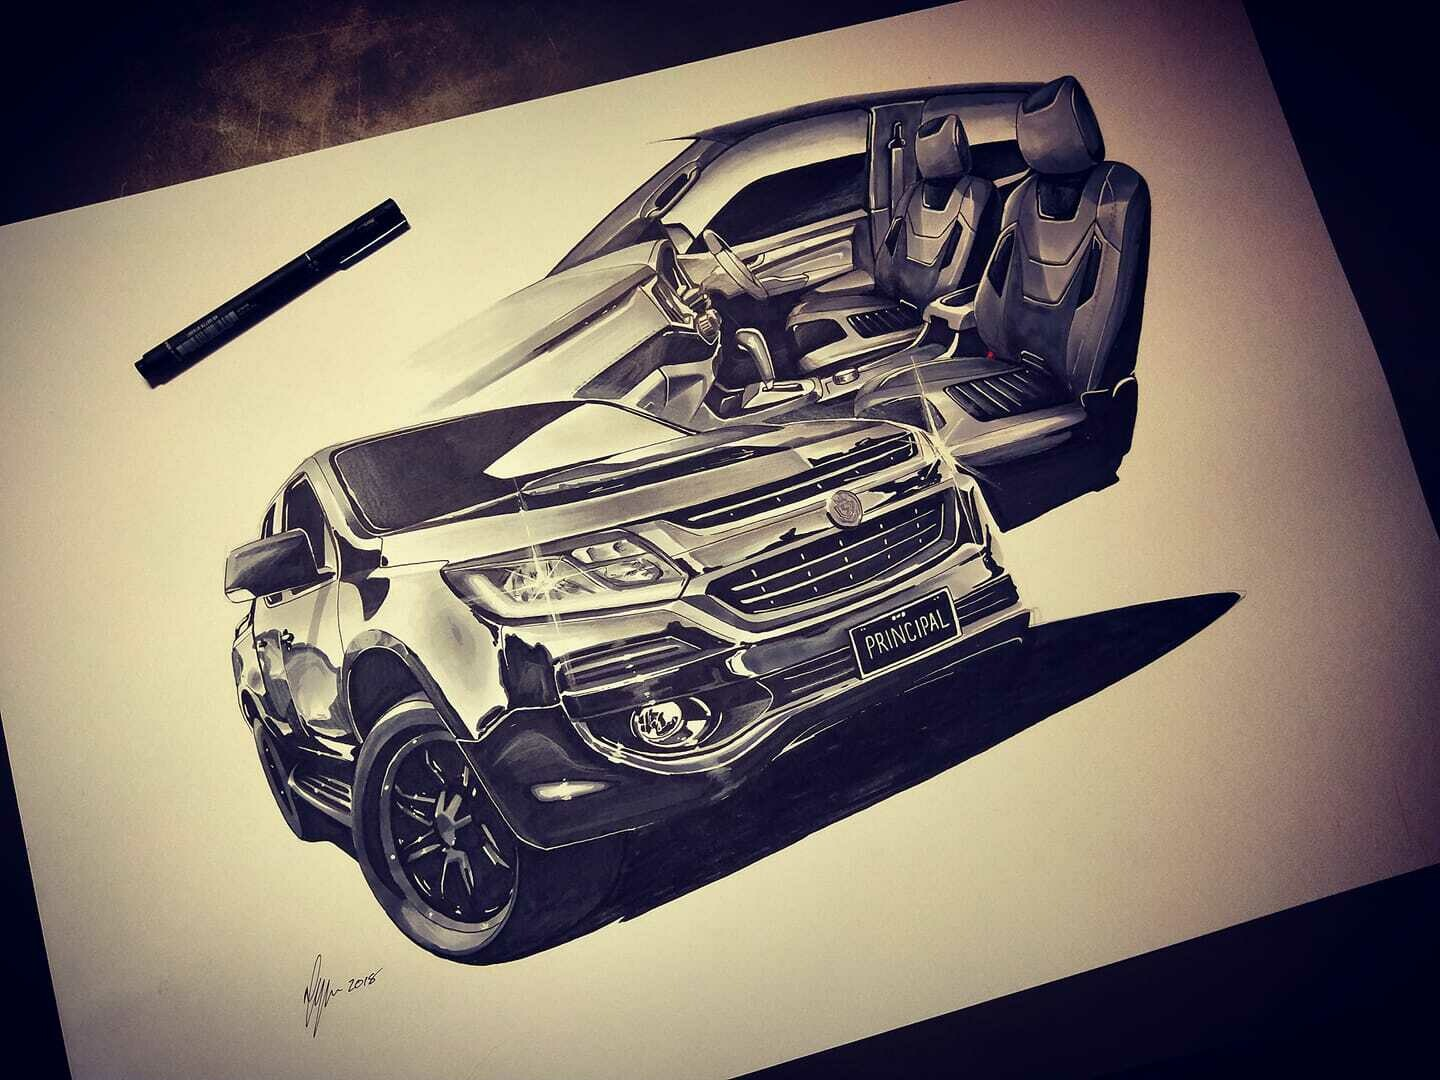 Hand Drawn Artwork of YOUR Car or Motorbike